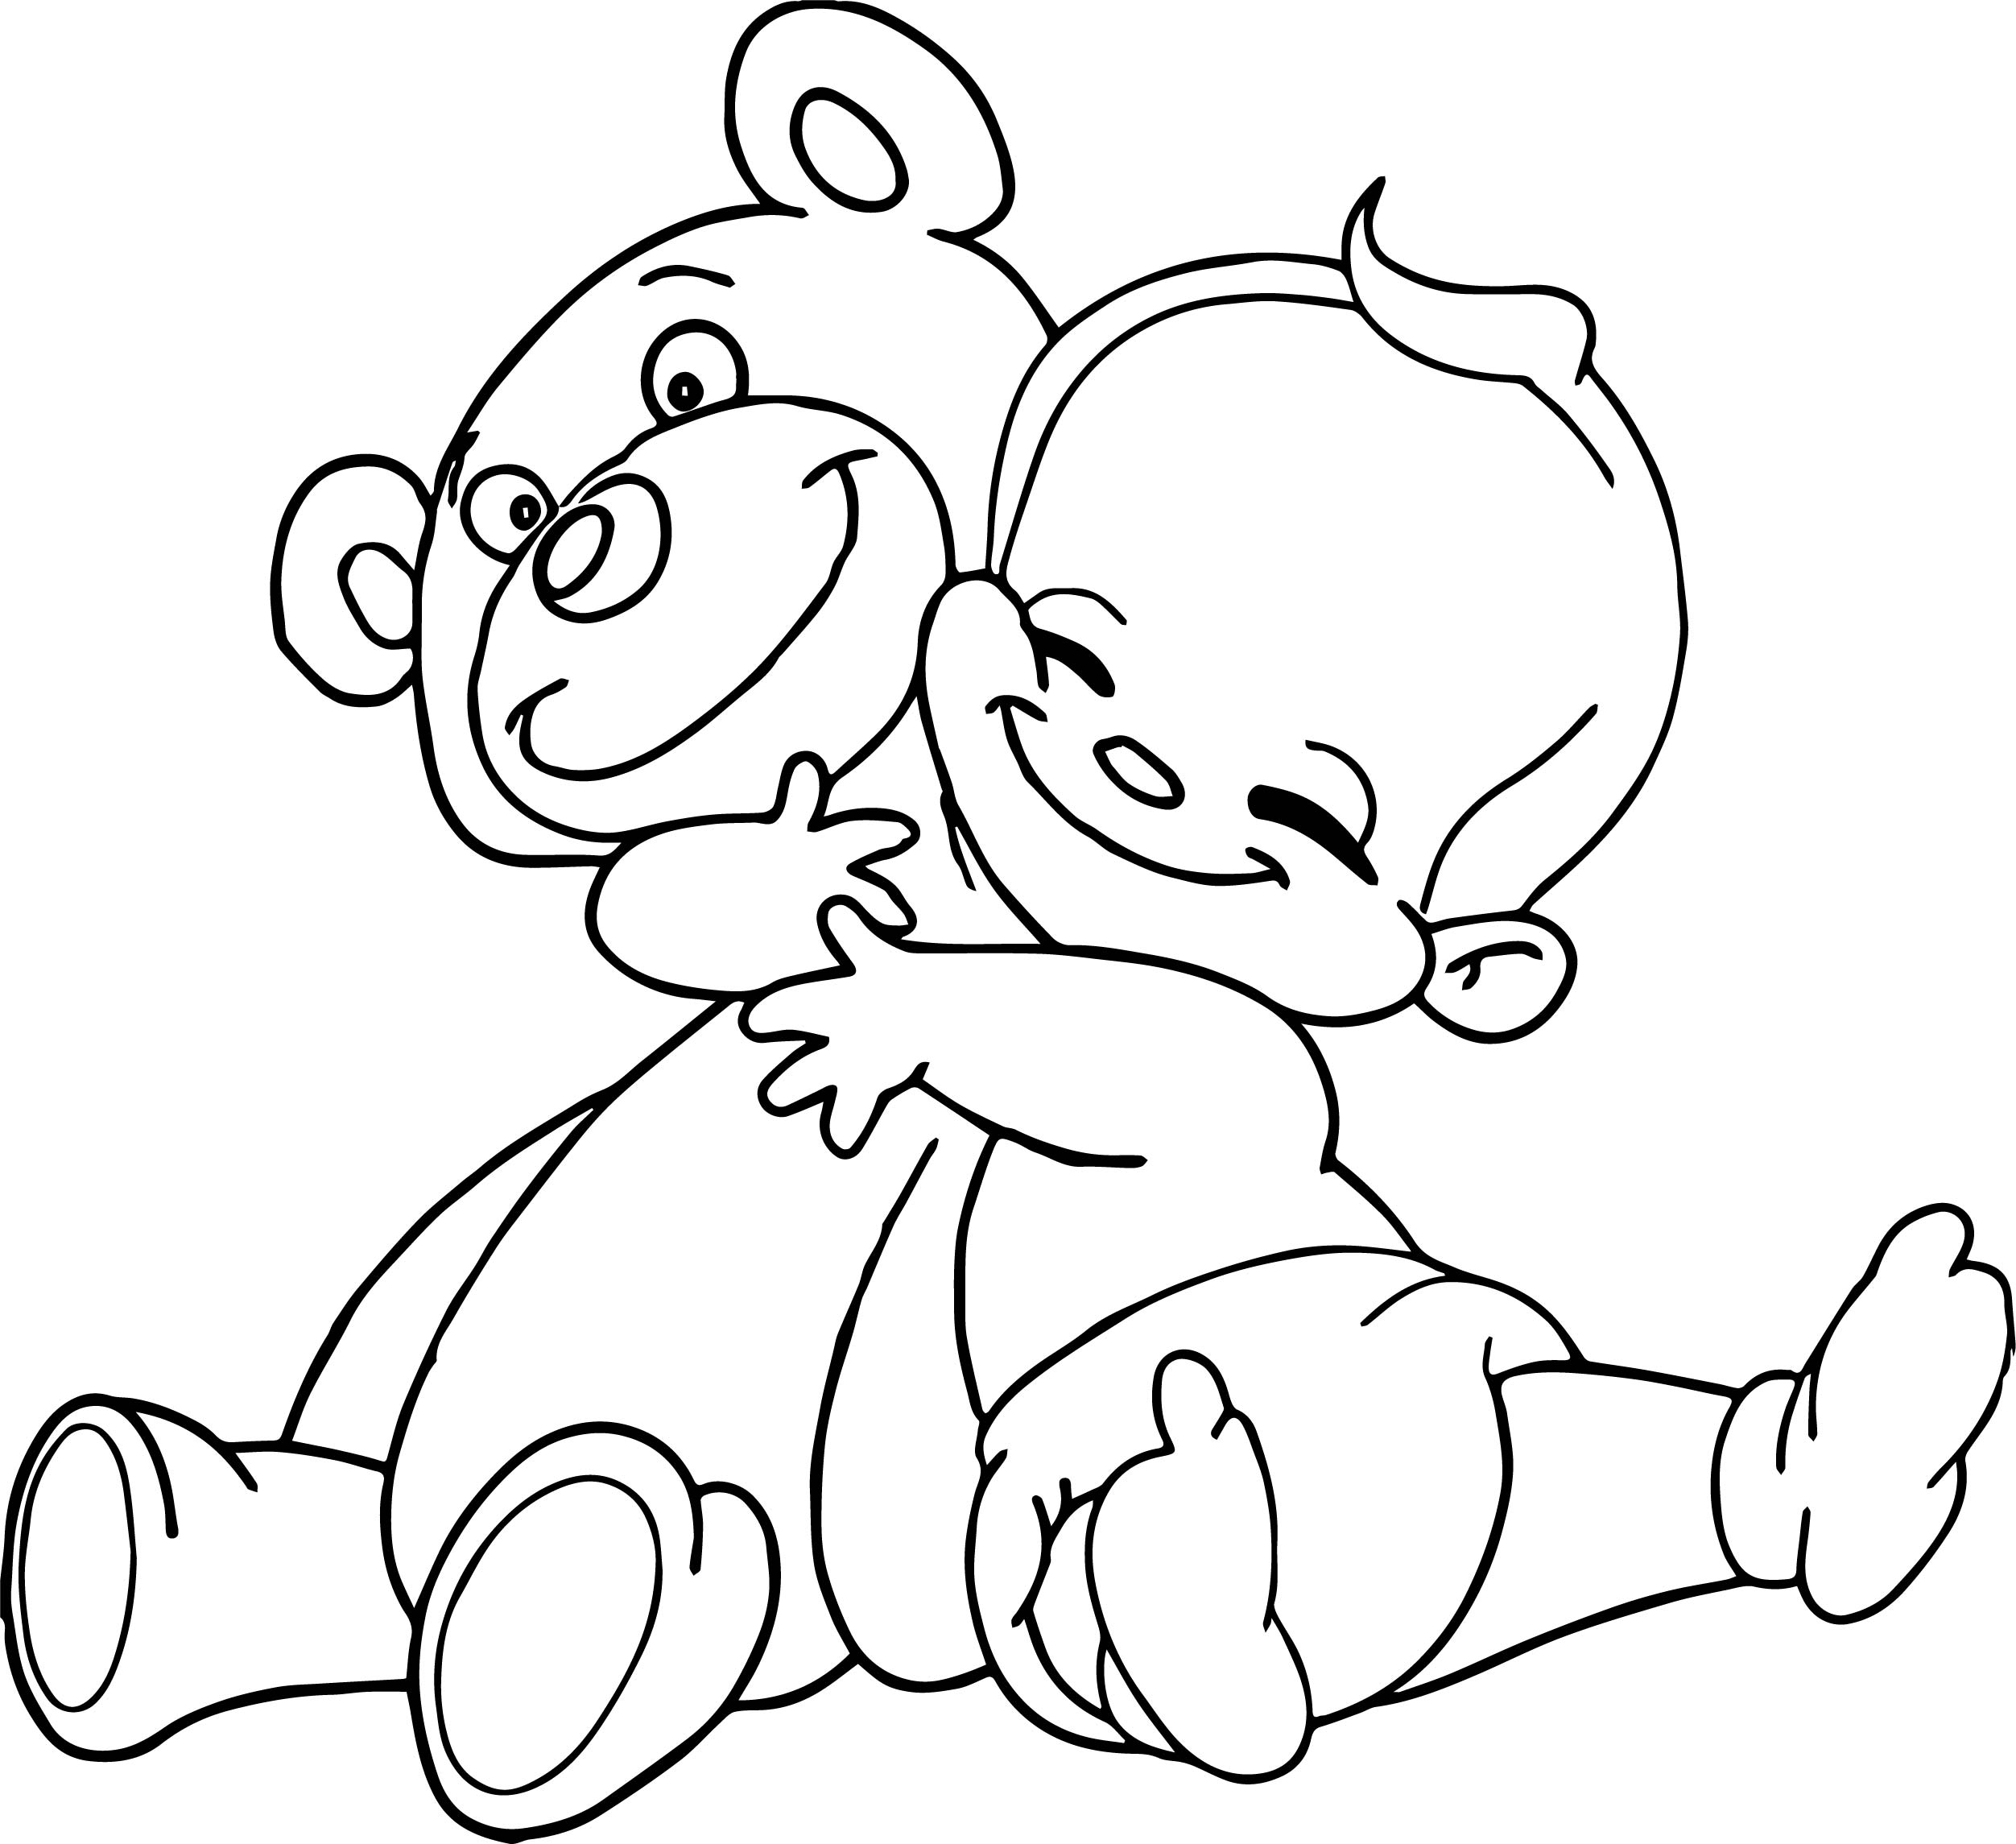 blond baby boy hugging a big teddy bear poster print coloring page